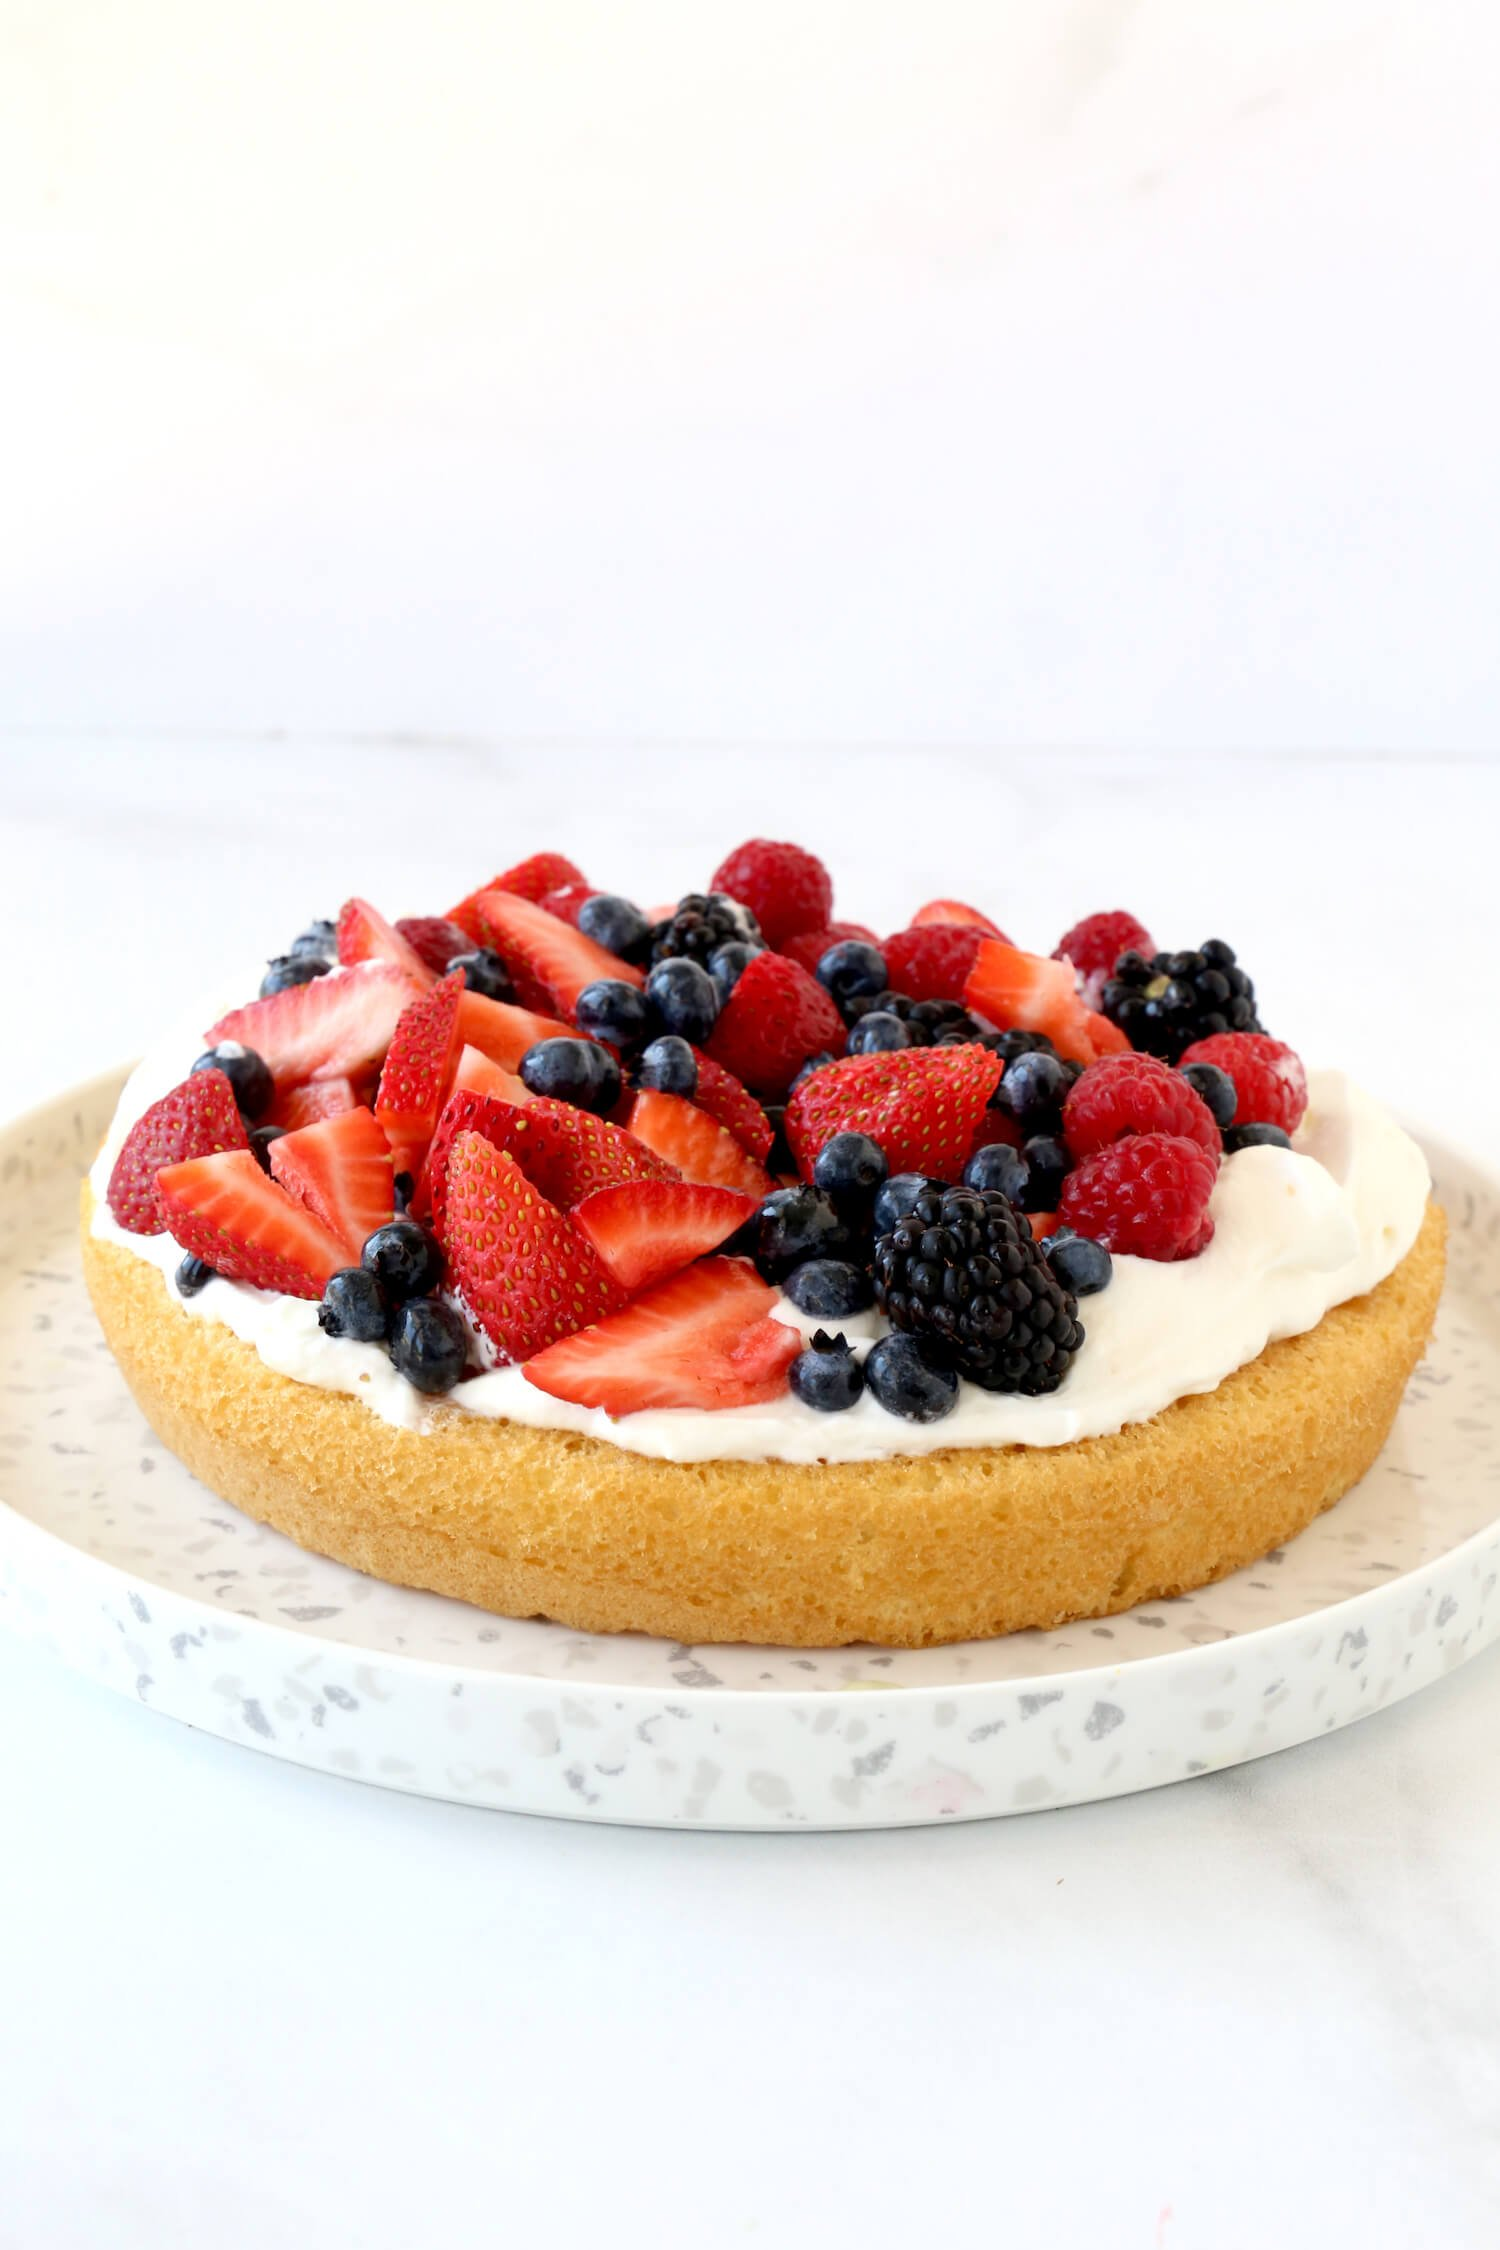 A layer of sponge cake with whipped cream and fresh fruit.